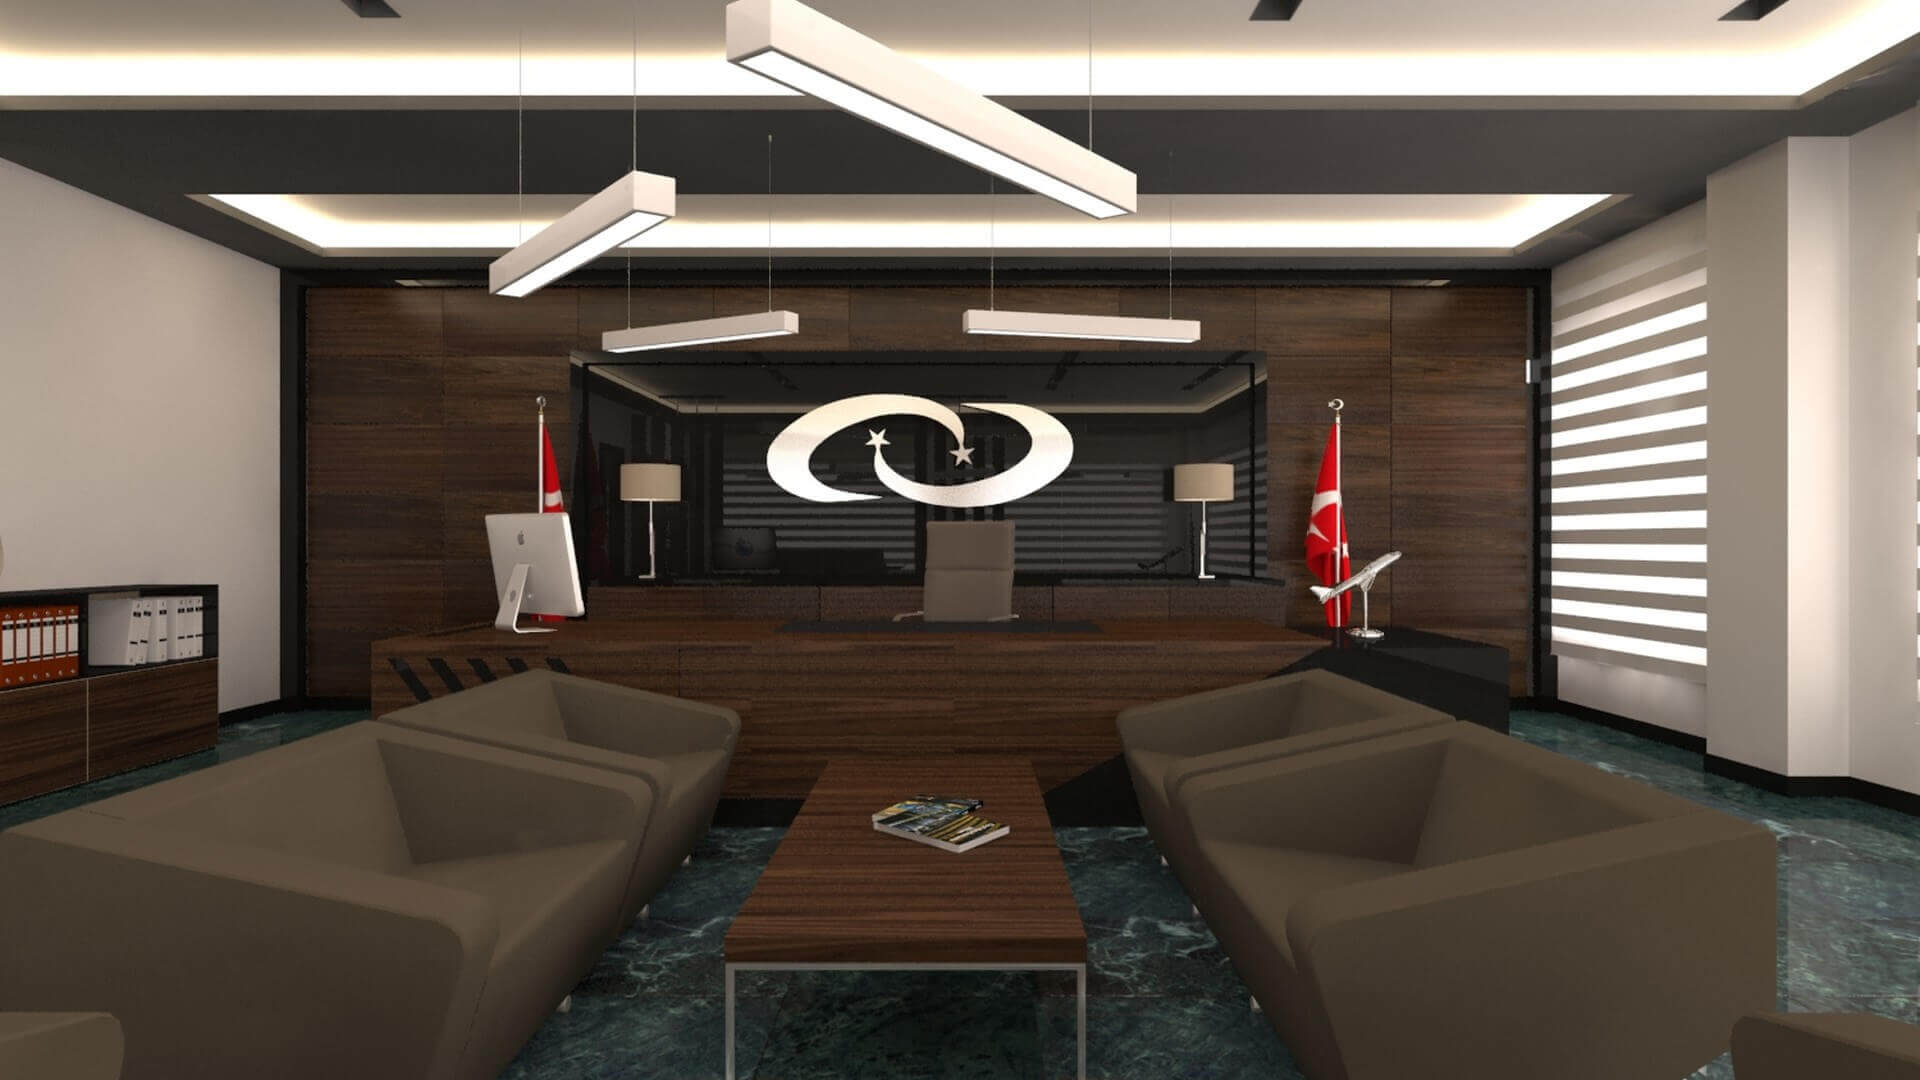 Waiting area 2721 Turk Ilac Office Building Offices